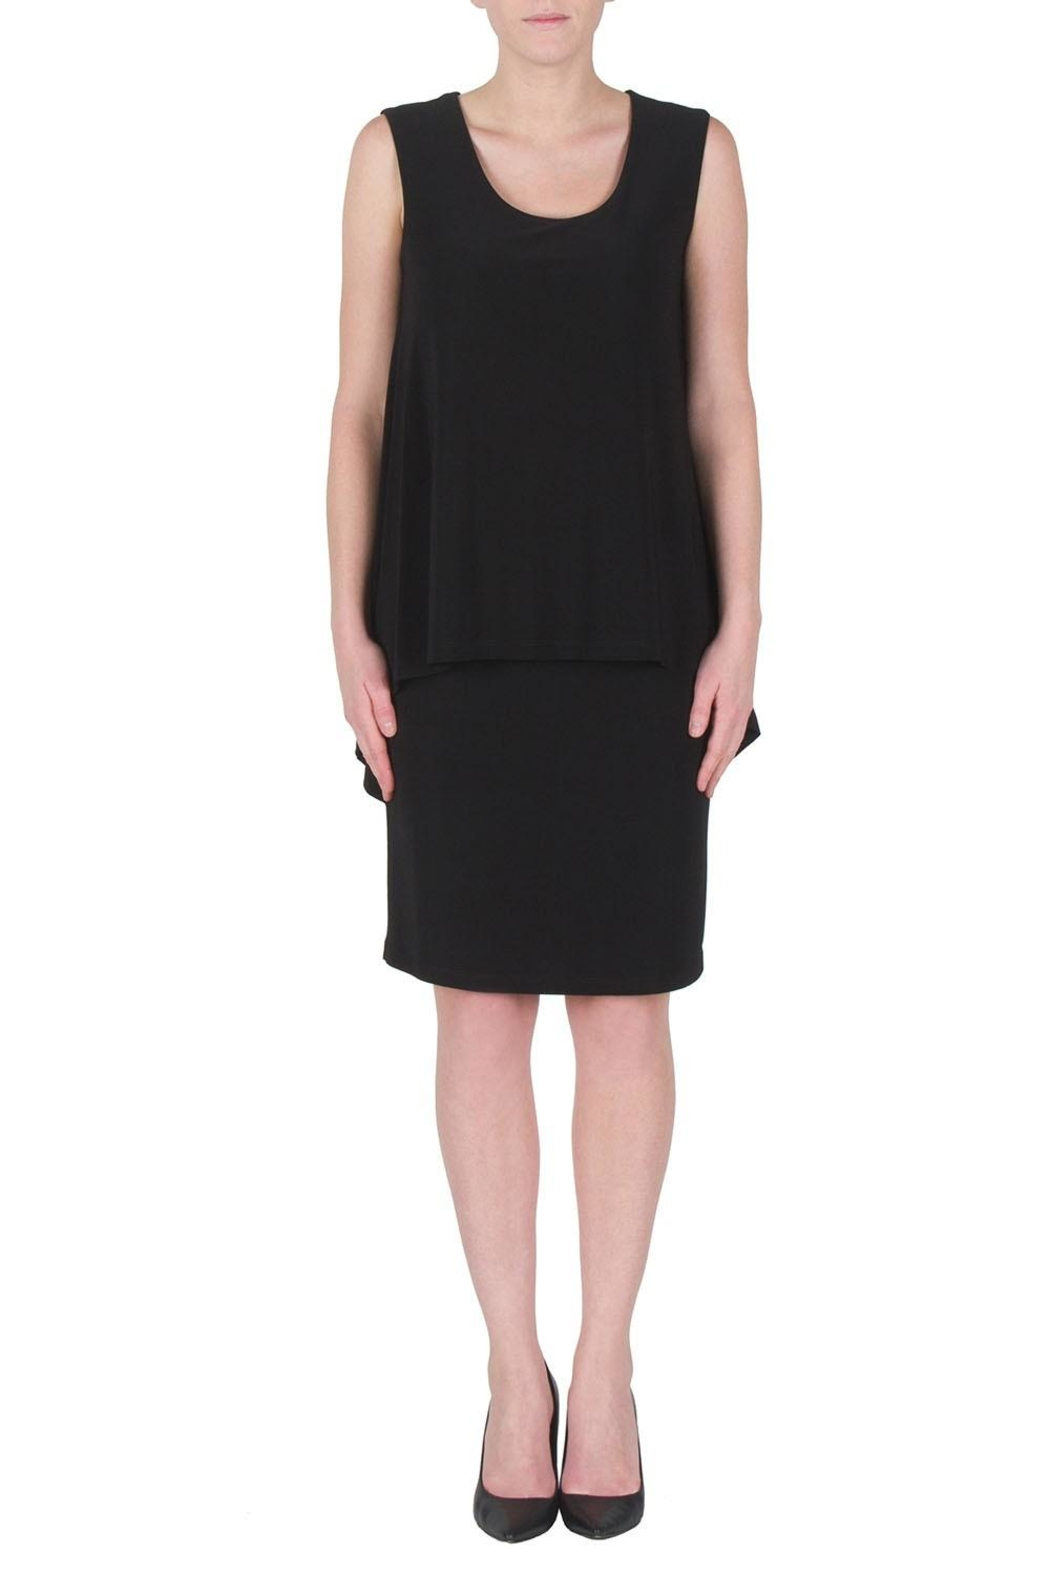 Joseph Ribkoff Draped Cocktail Dress - Front Cropped Image